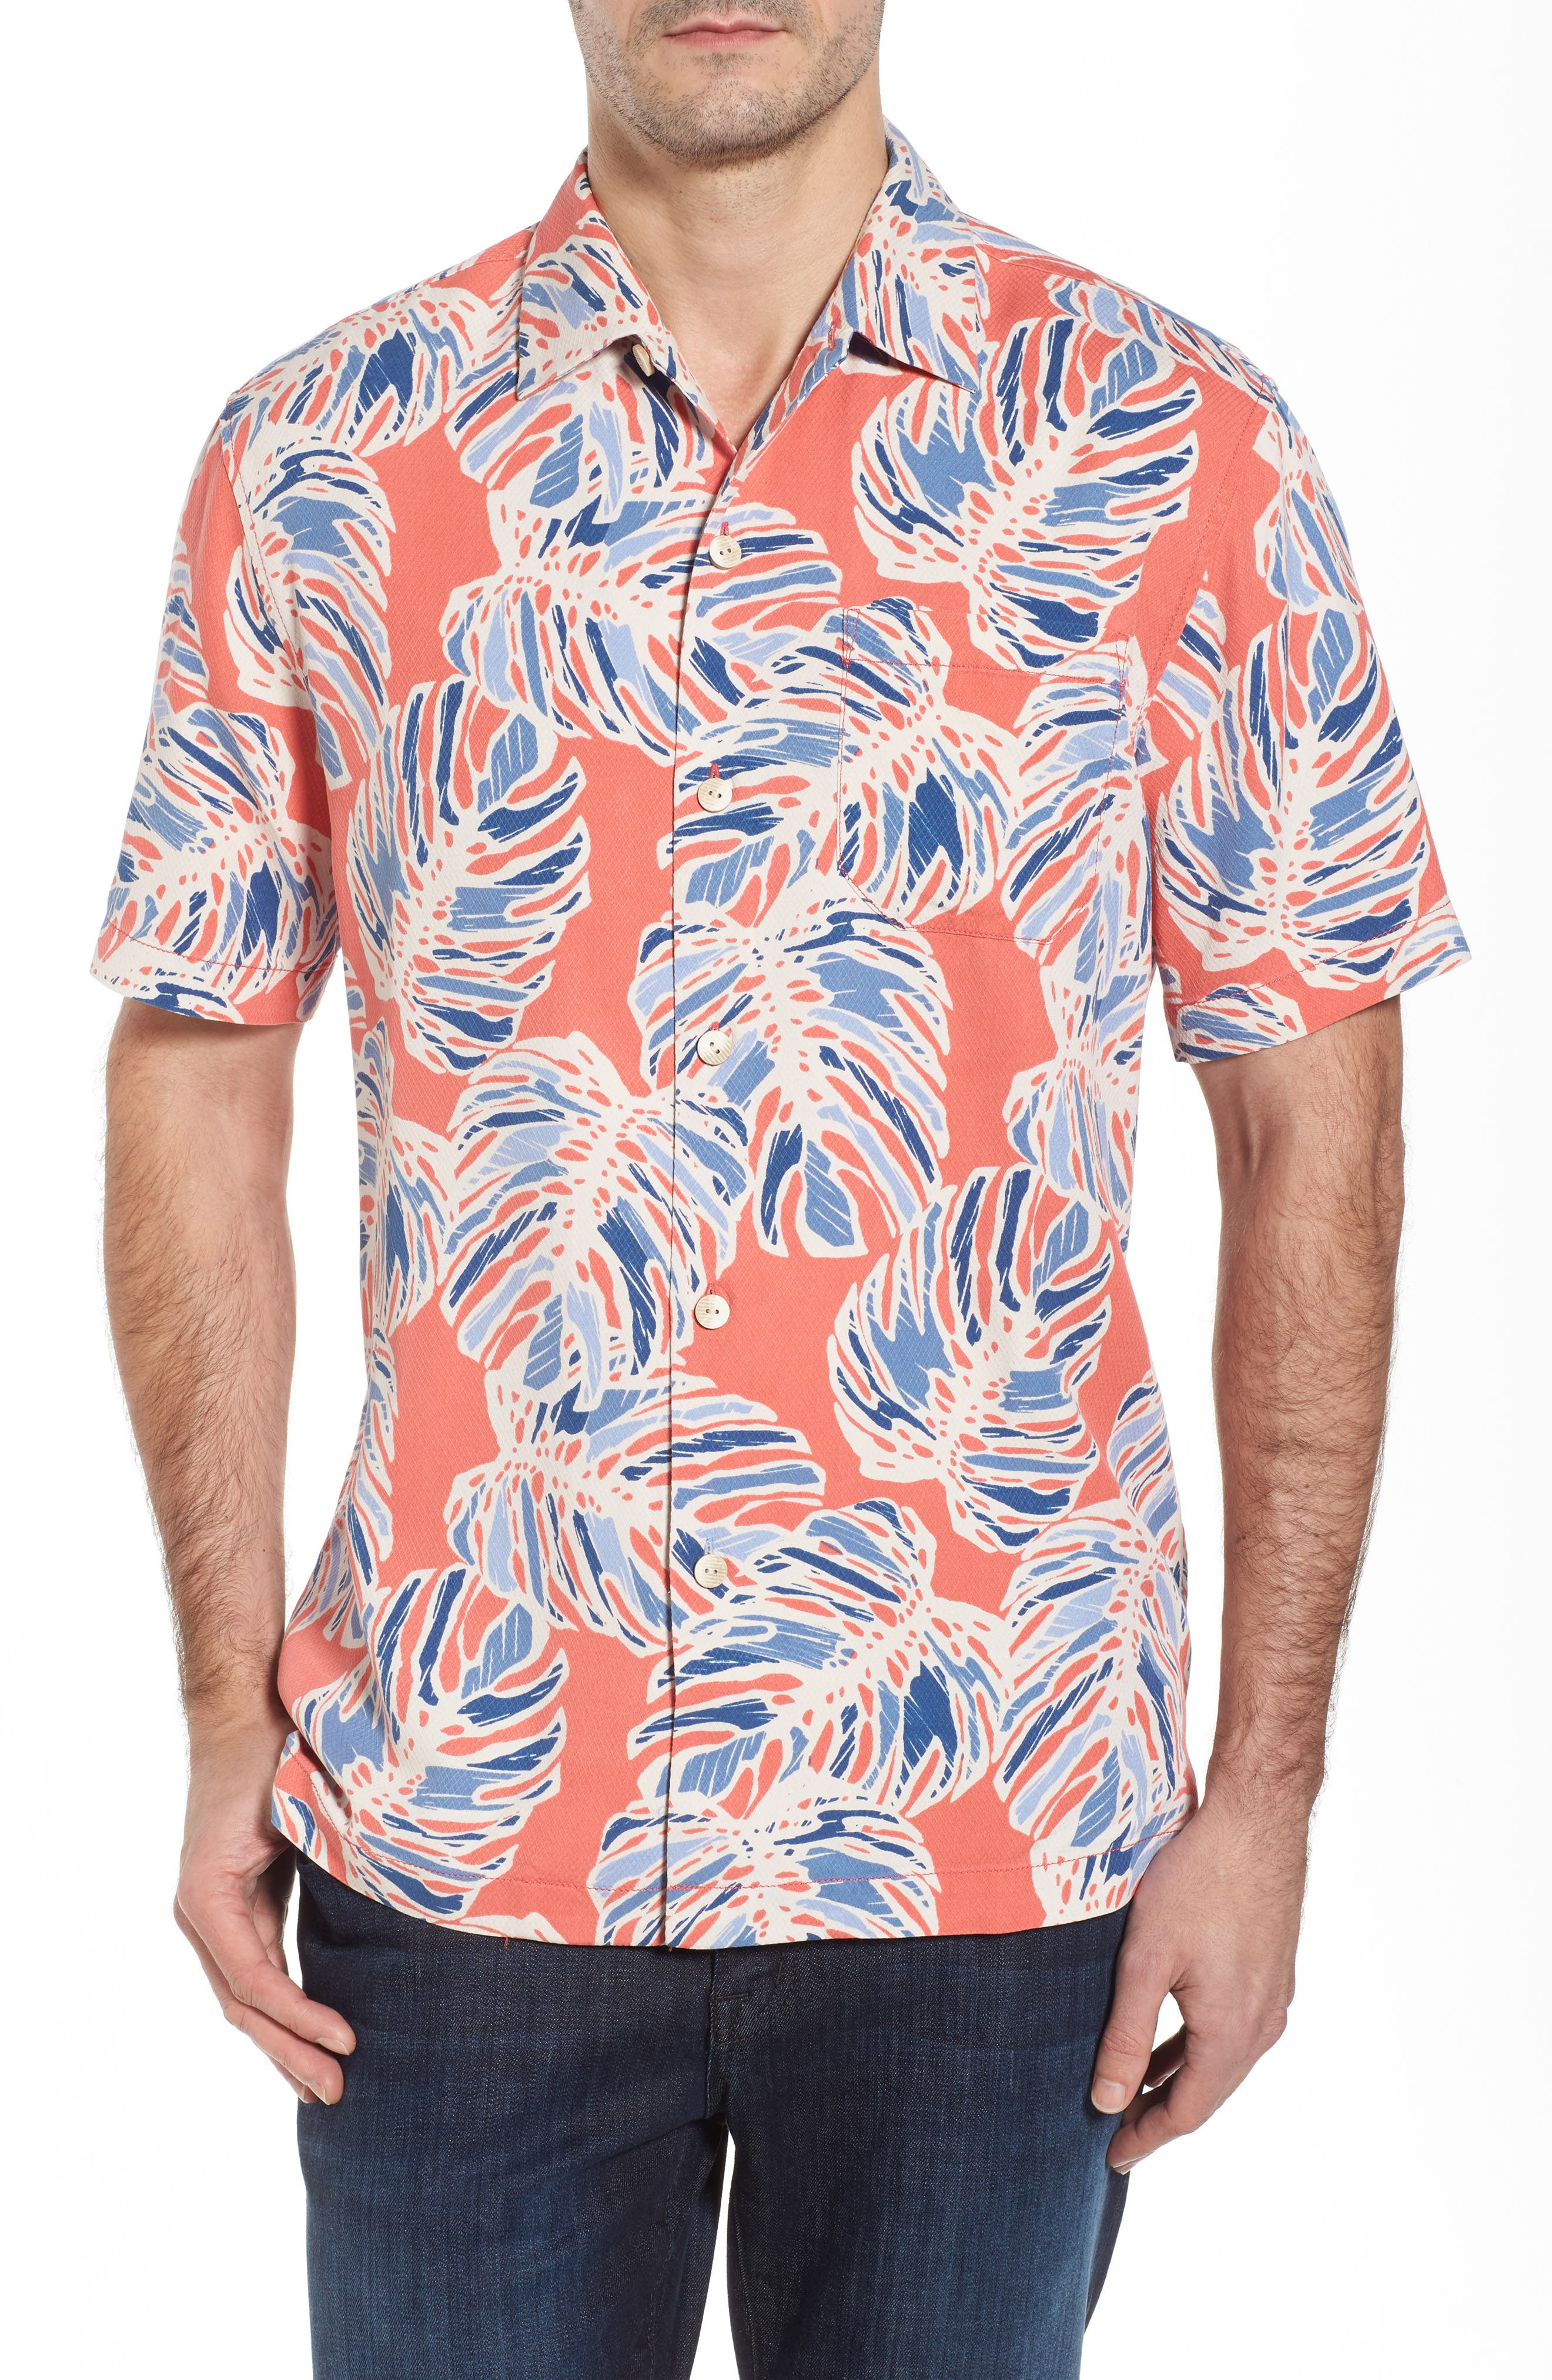 Leaf It to Chance Silk Camp Shirt,                         Main,                         color,